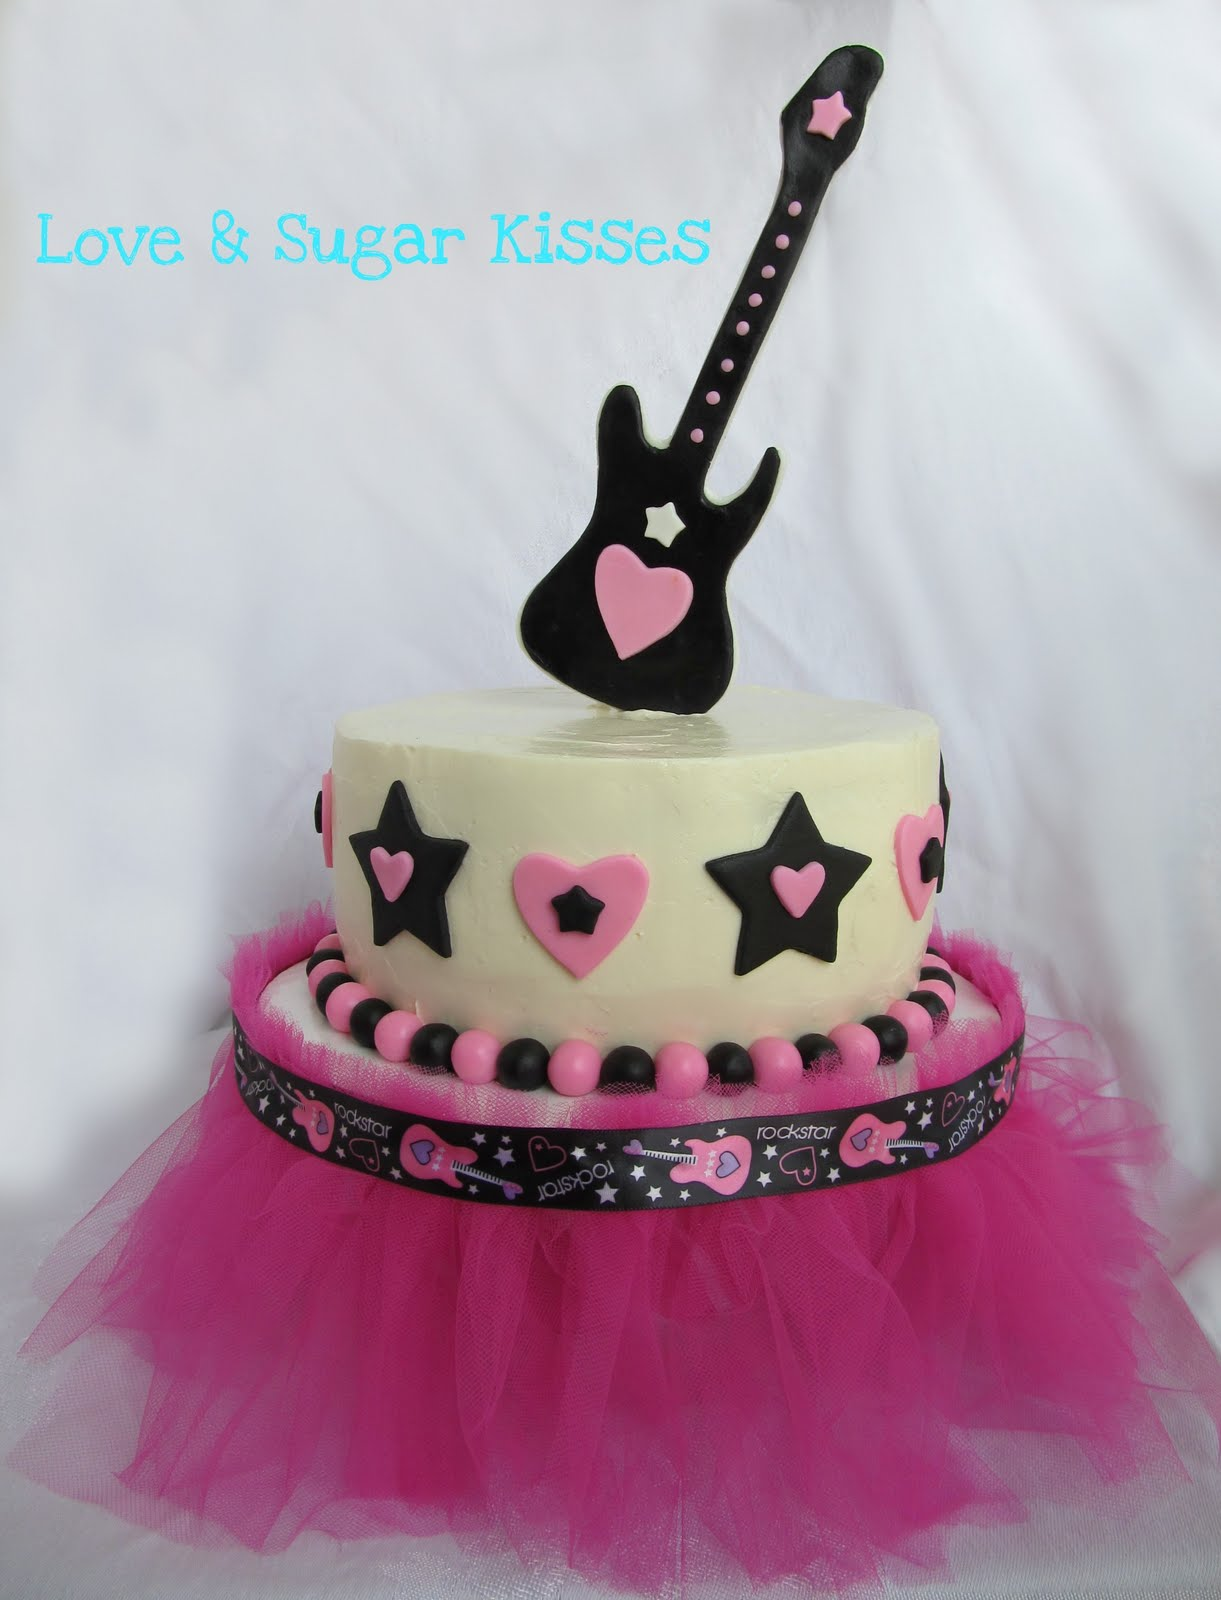 Rock Girl Birthday Cake http://lovesugarkisses.blogspot.com/2011/08/rock-party-cake.html